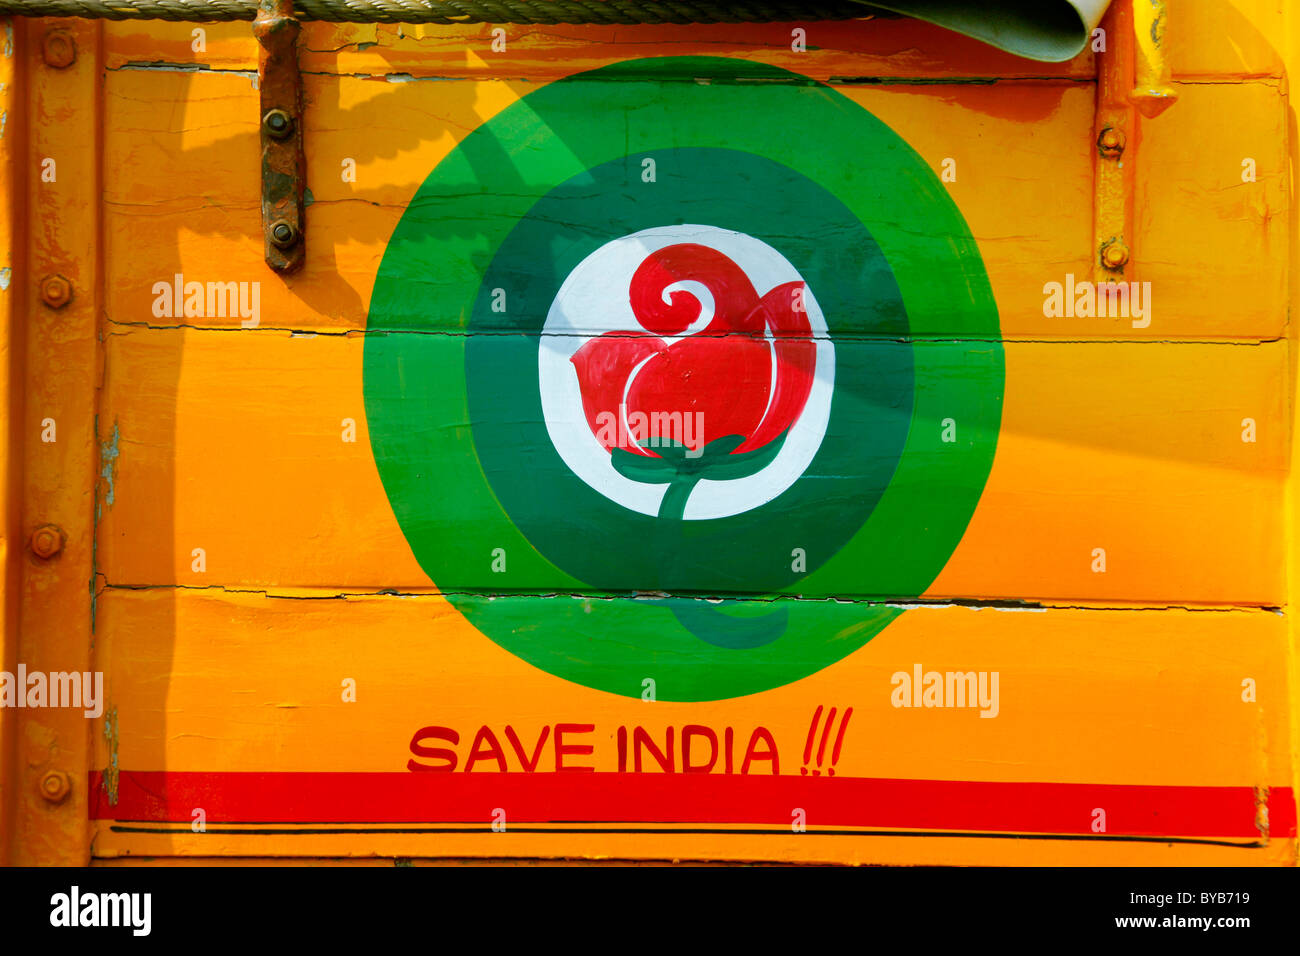 Save India, painting on a truck, Cochin, Kochi, Kerala, India, Asia - Stock Image